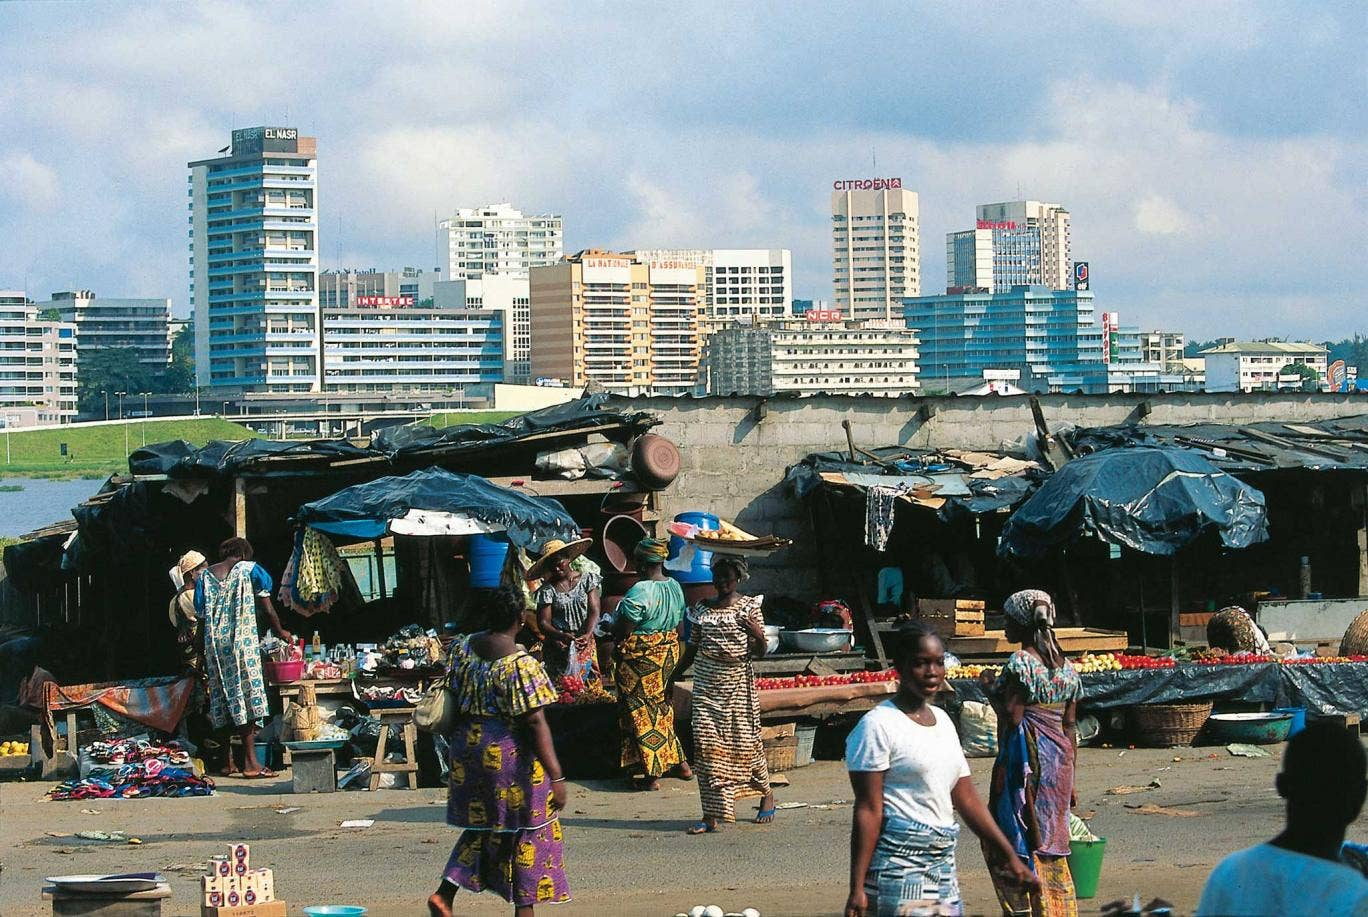 The market in Abidjan, the largest city in Ivory Coast